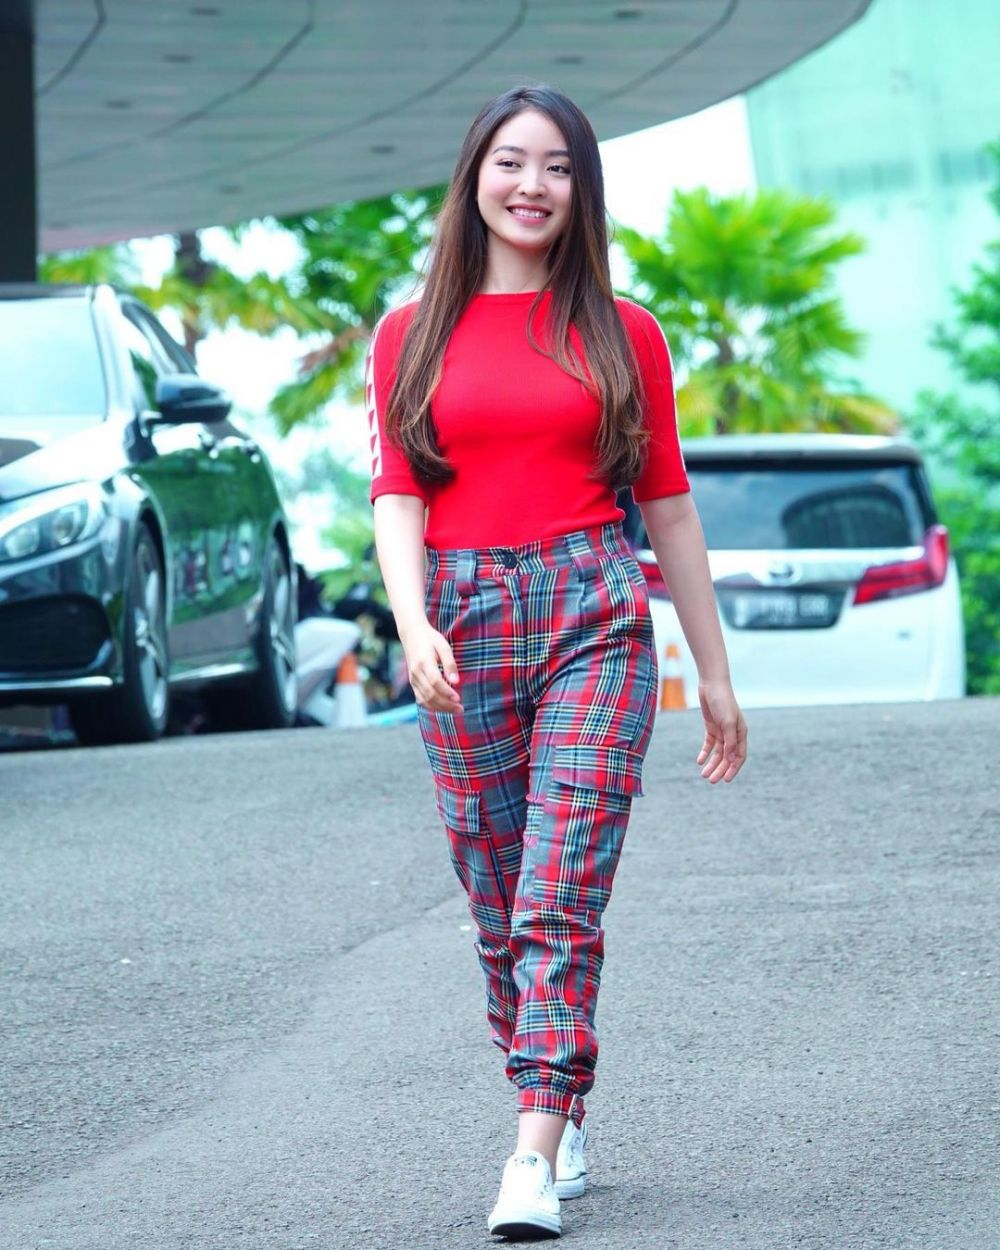 10 Ide Mix and Match Outfit Kotak-kotak ala Natasha Wilona